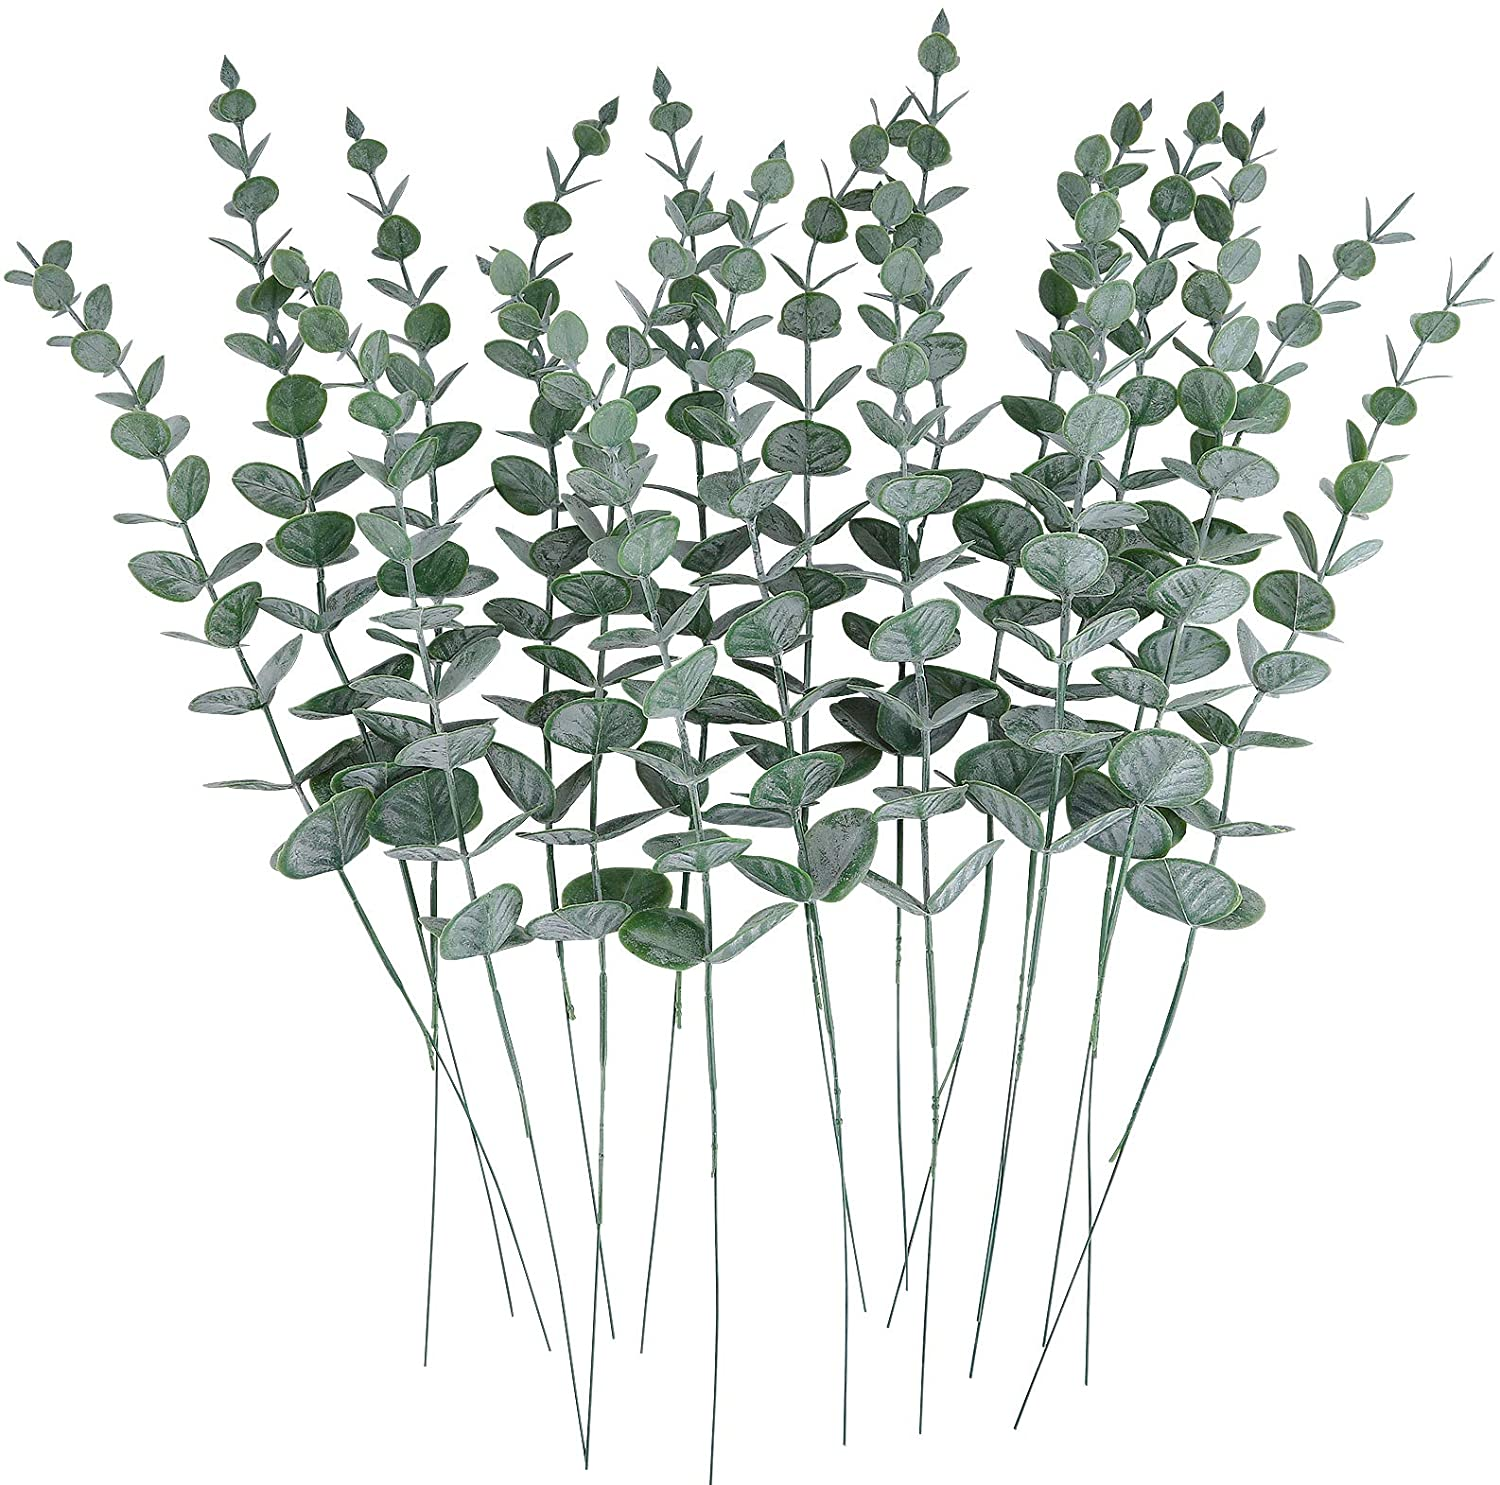 Artificial Plants Green Leaf Branch Eucalyptus Artificial Greenery Leaves for wedding decoration home decorative accessories